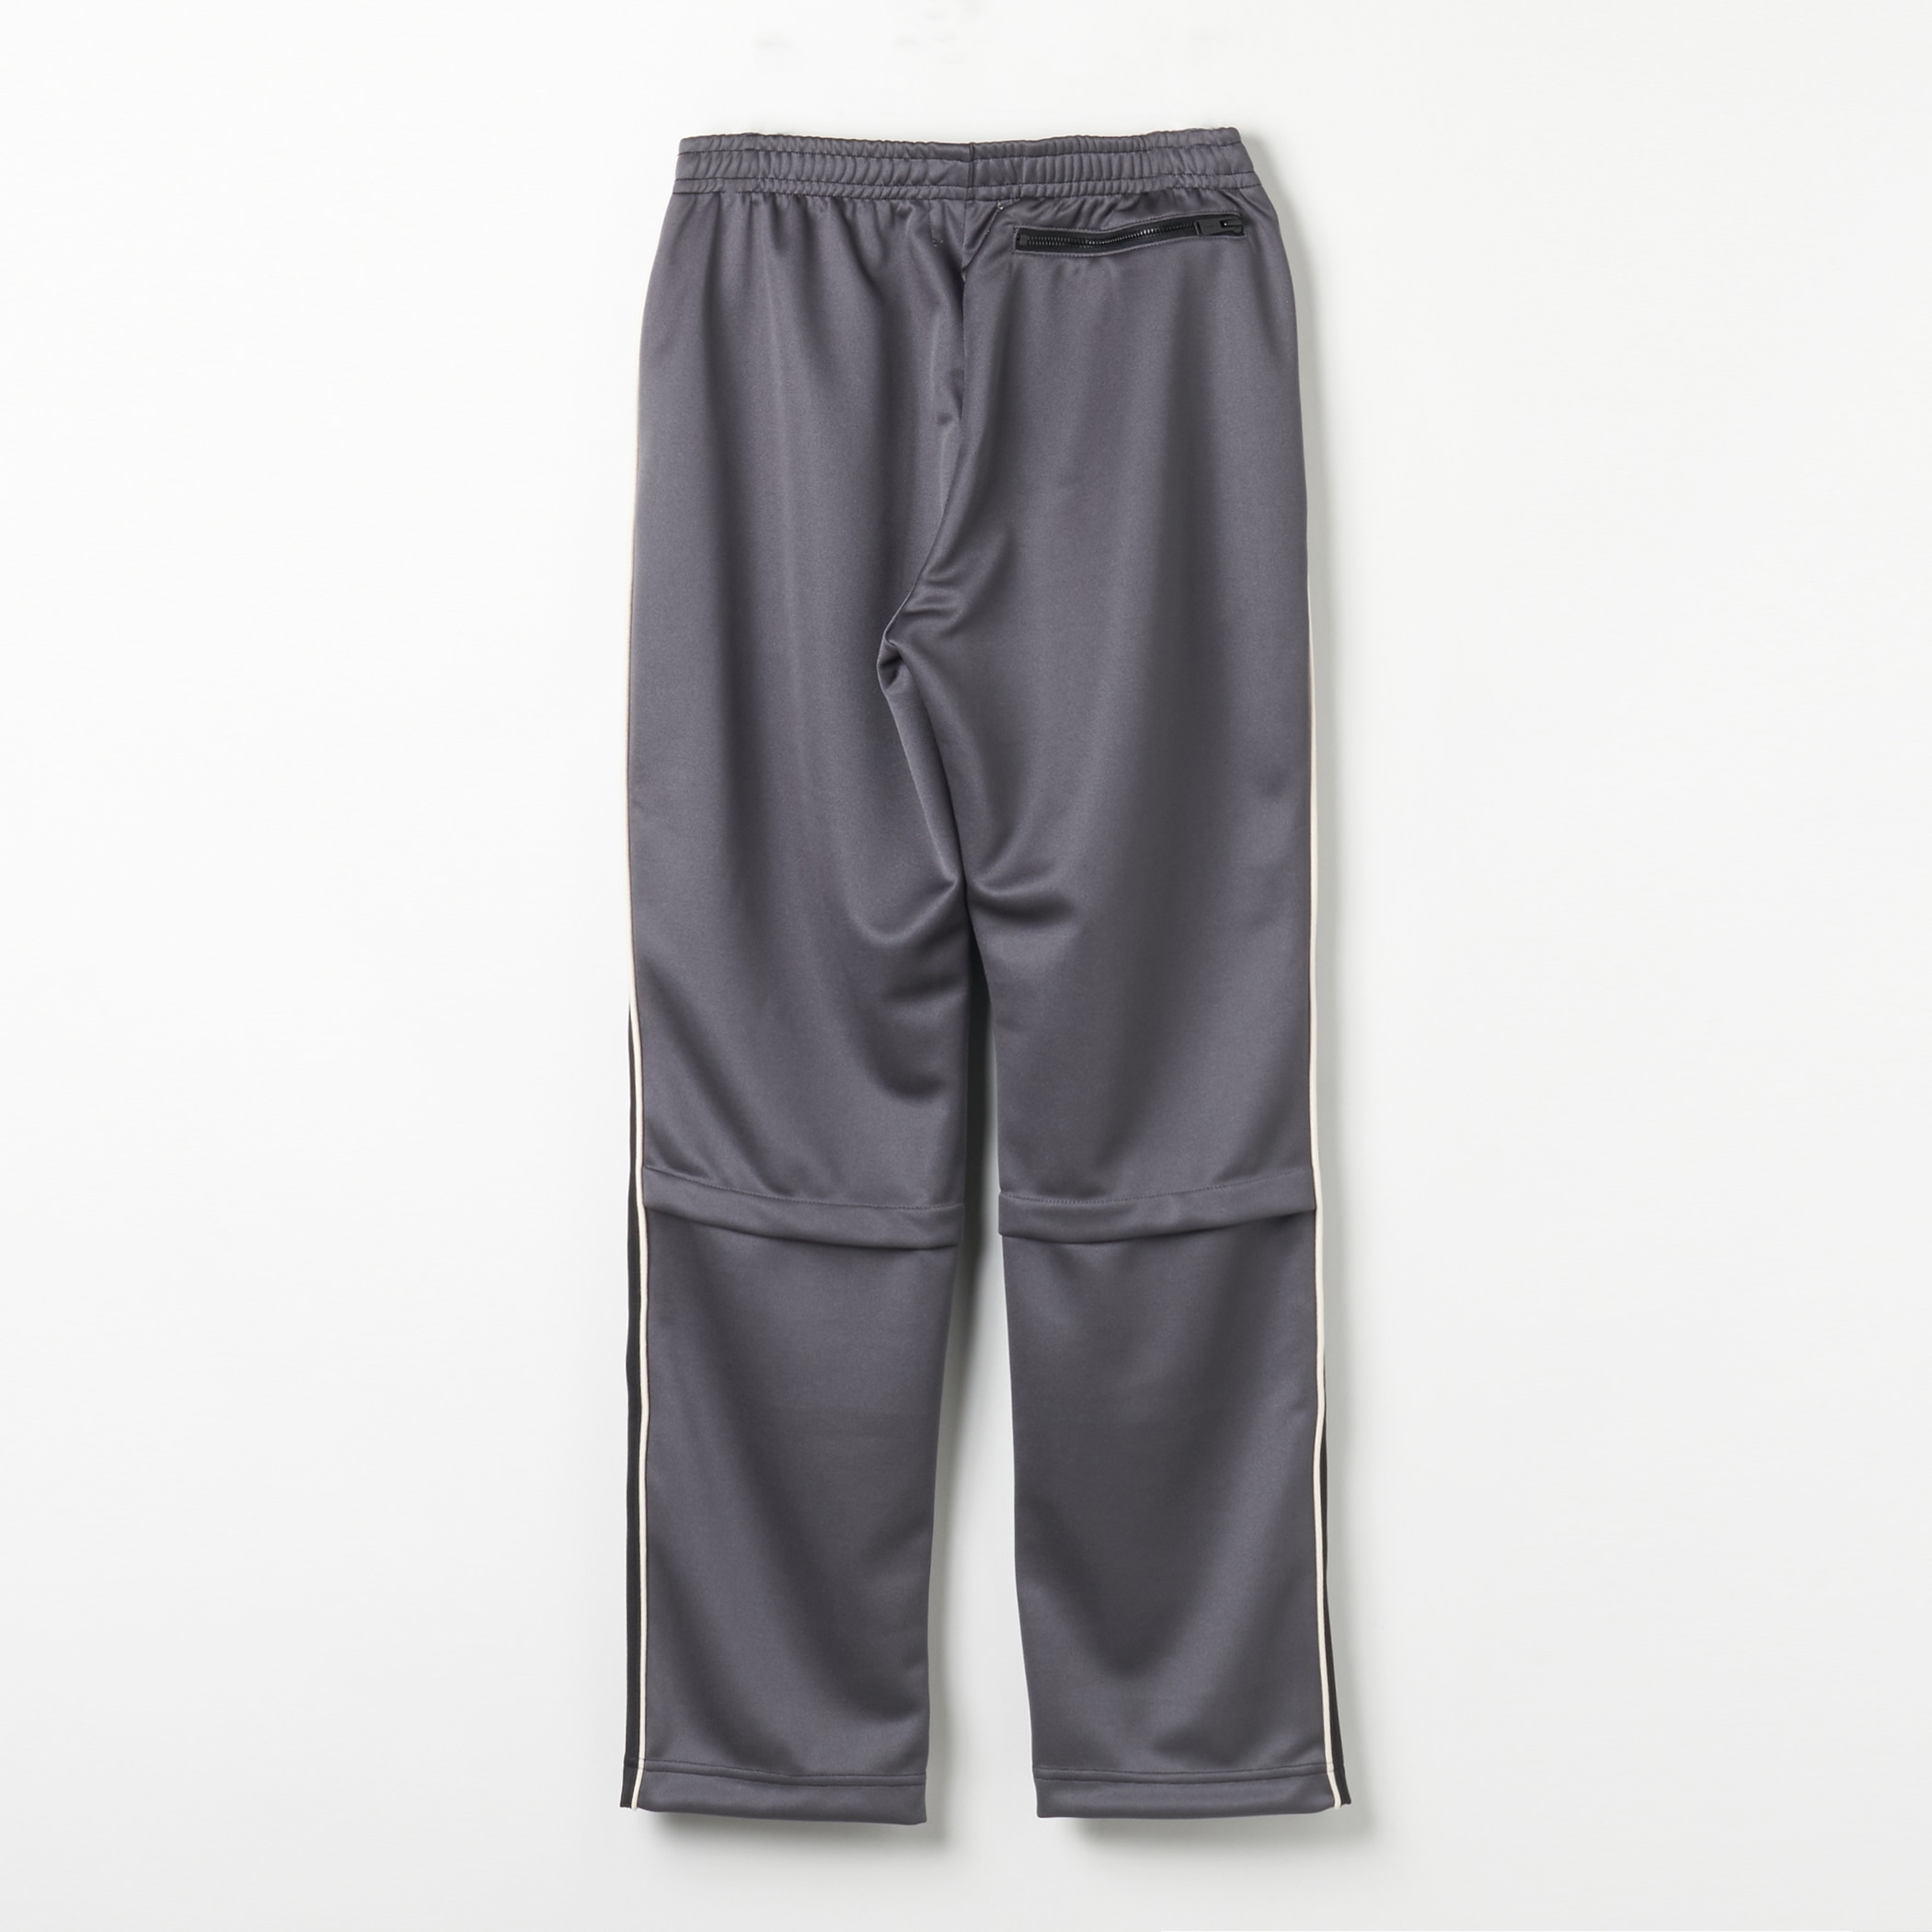 TRACK TROUSERS 詳細画像 D.Grey 8